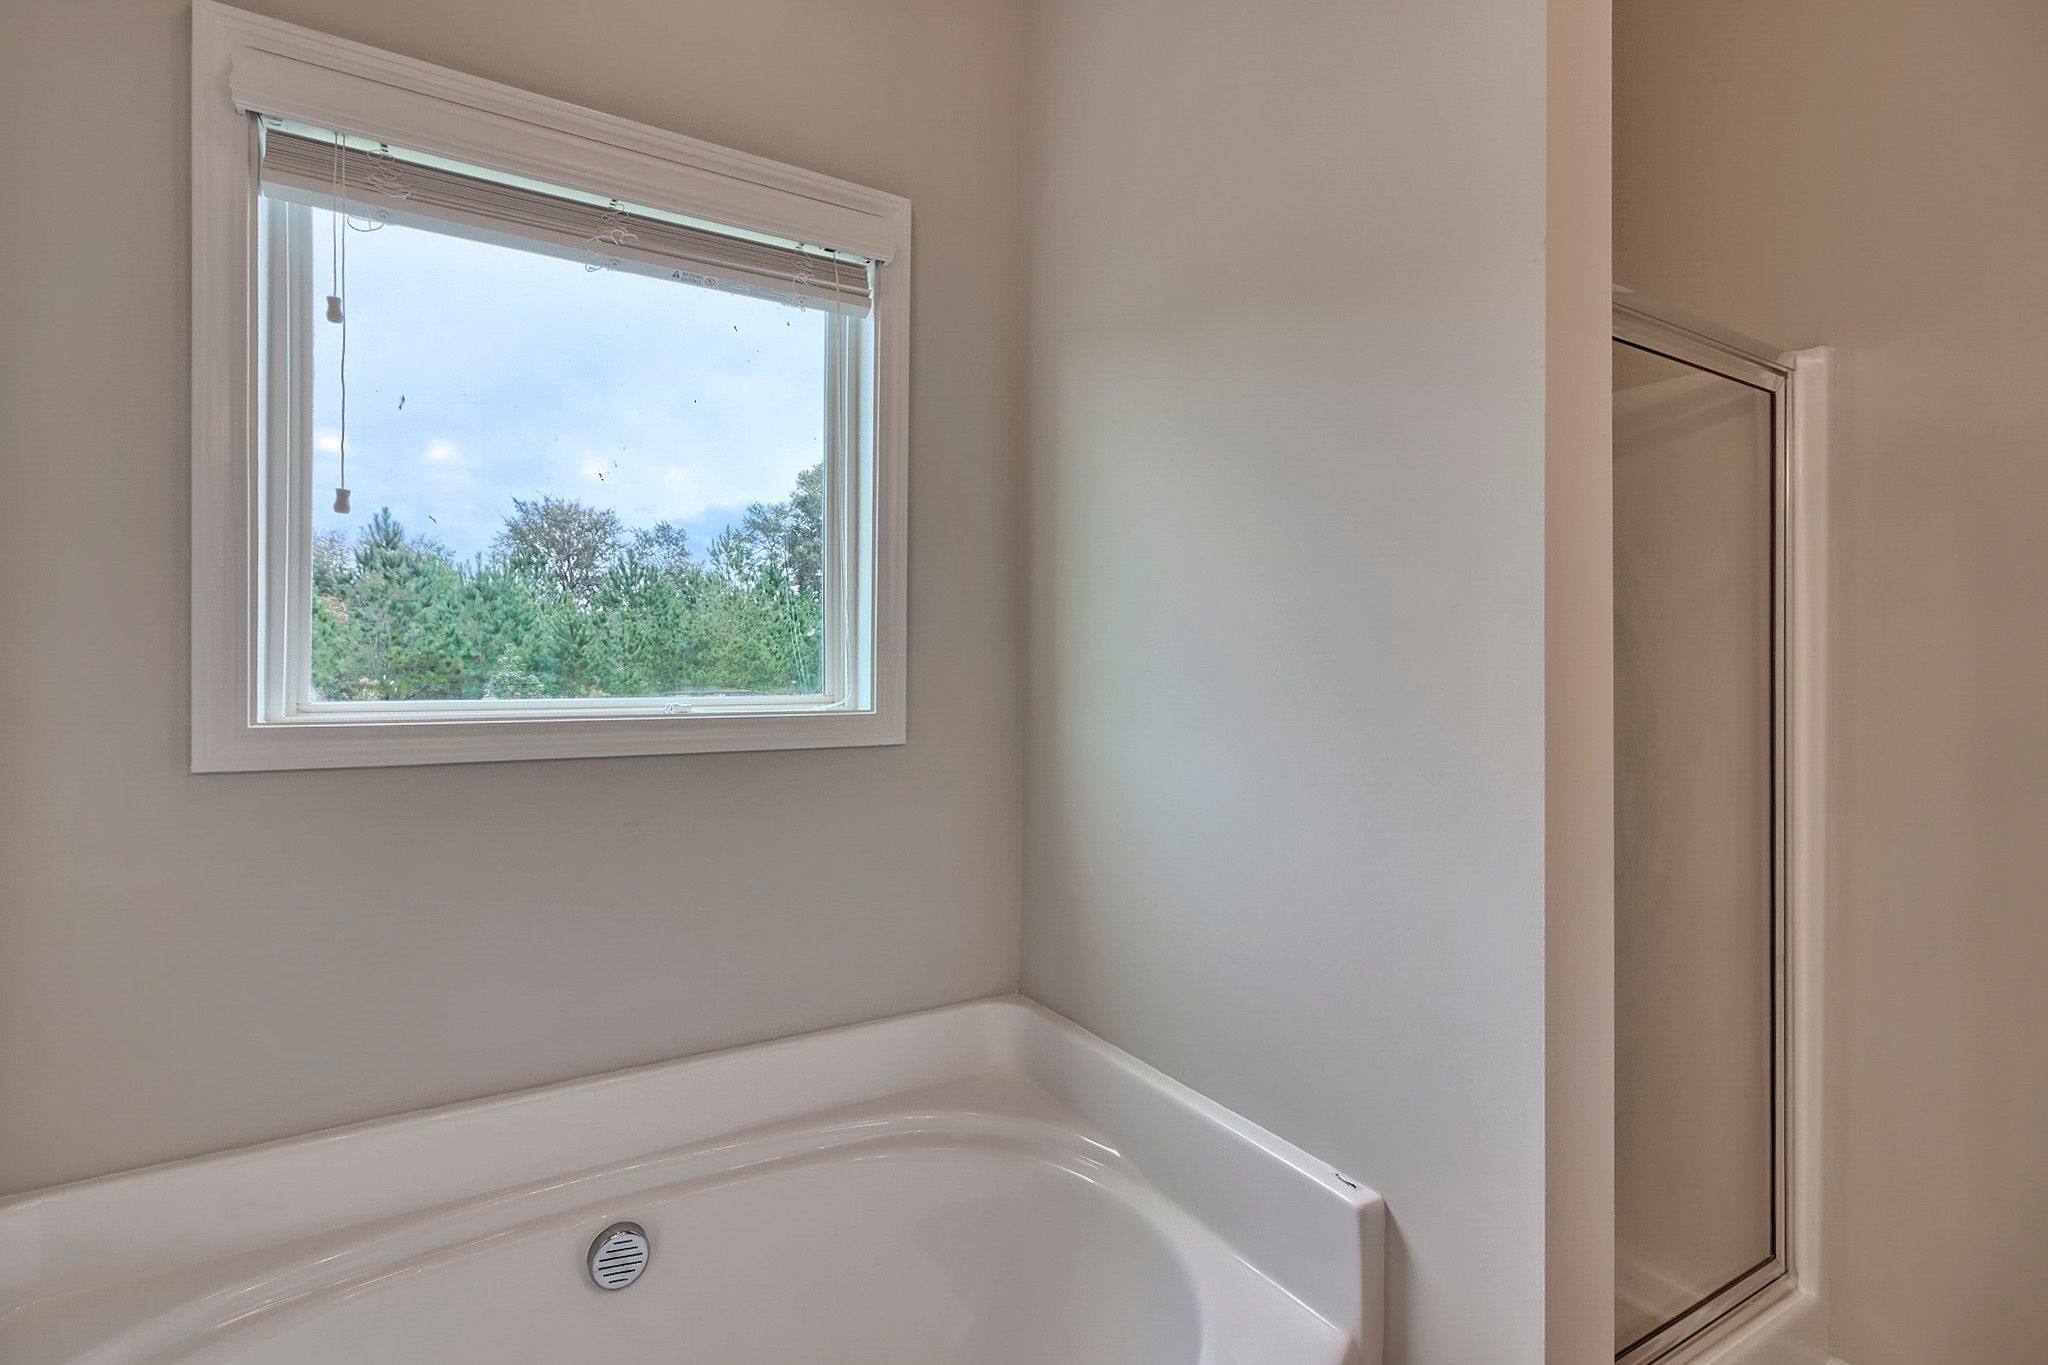 Bathroom featured in the Camellia C w/Bonus By Great Southern Homes in Myrtle Beach, SC